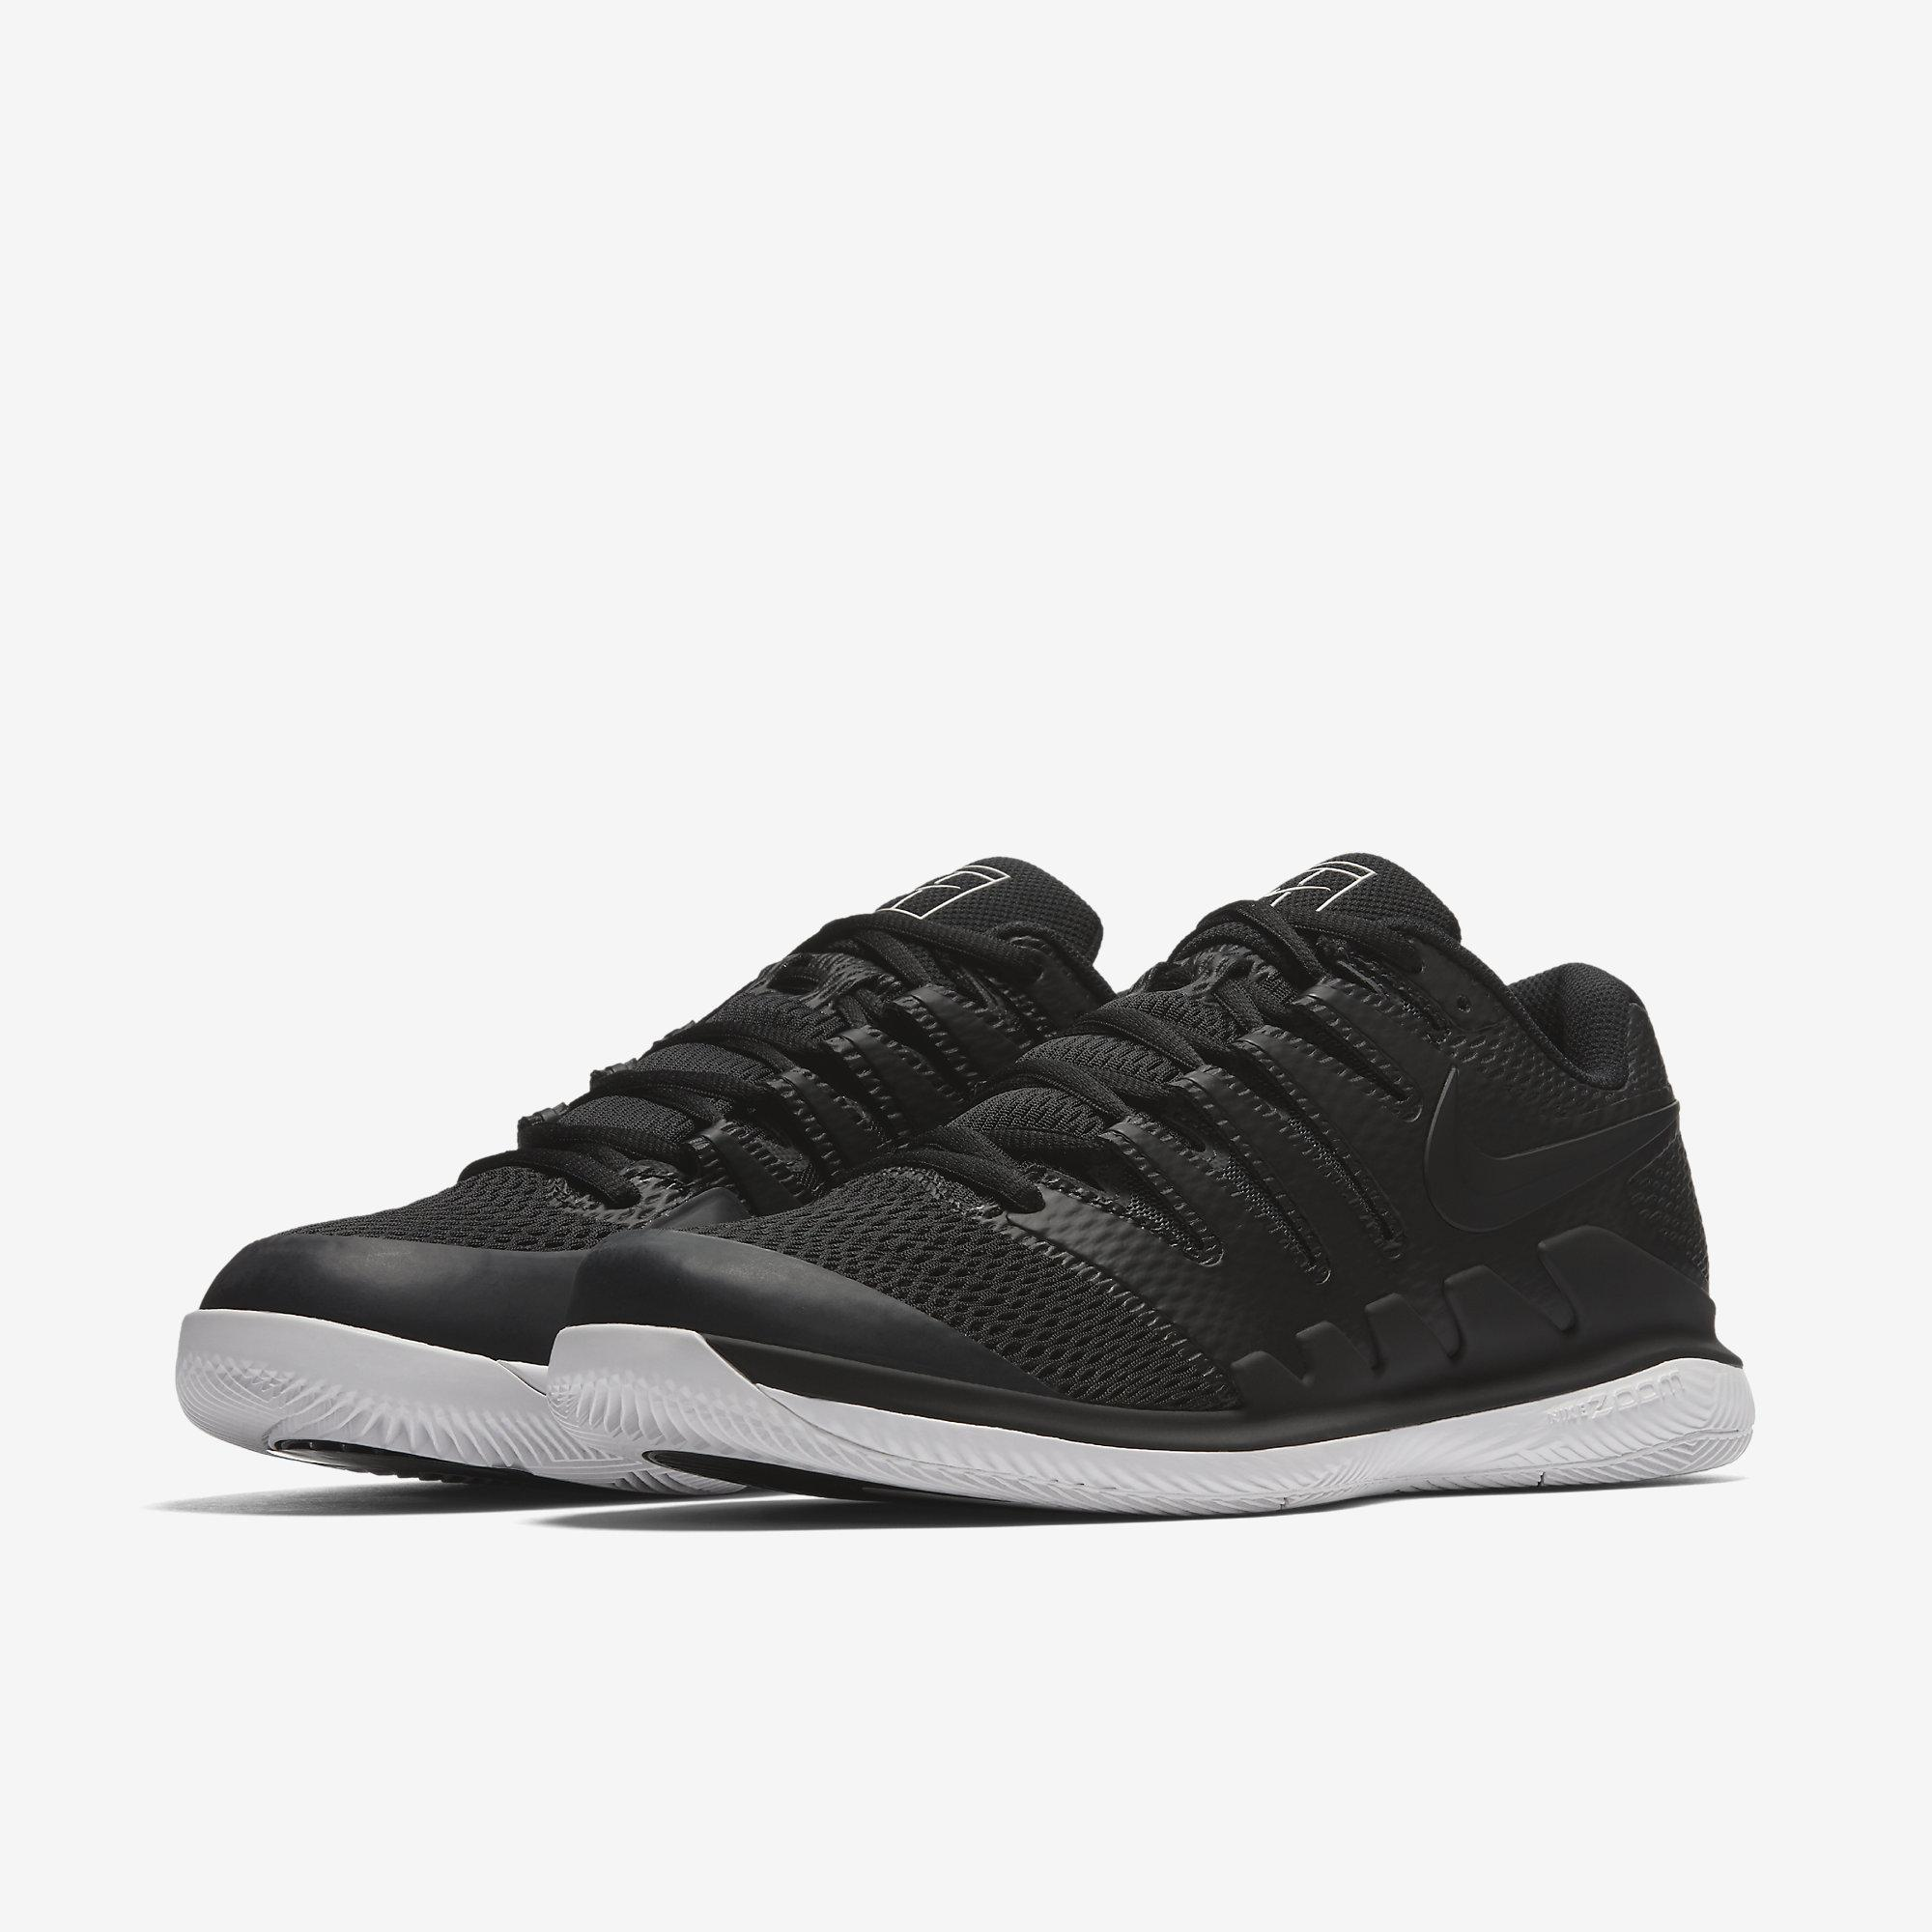 release date: ac30a 87d6b Nike Mens Air Zoom Vapor X Tennis Shoes - Black White - Tennisnuts.com